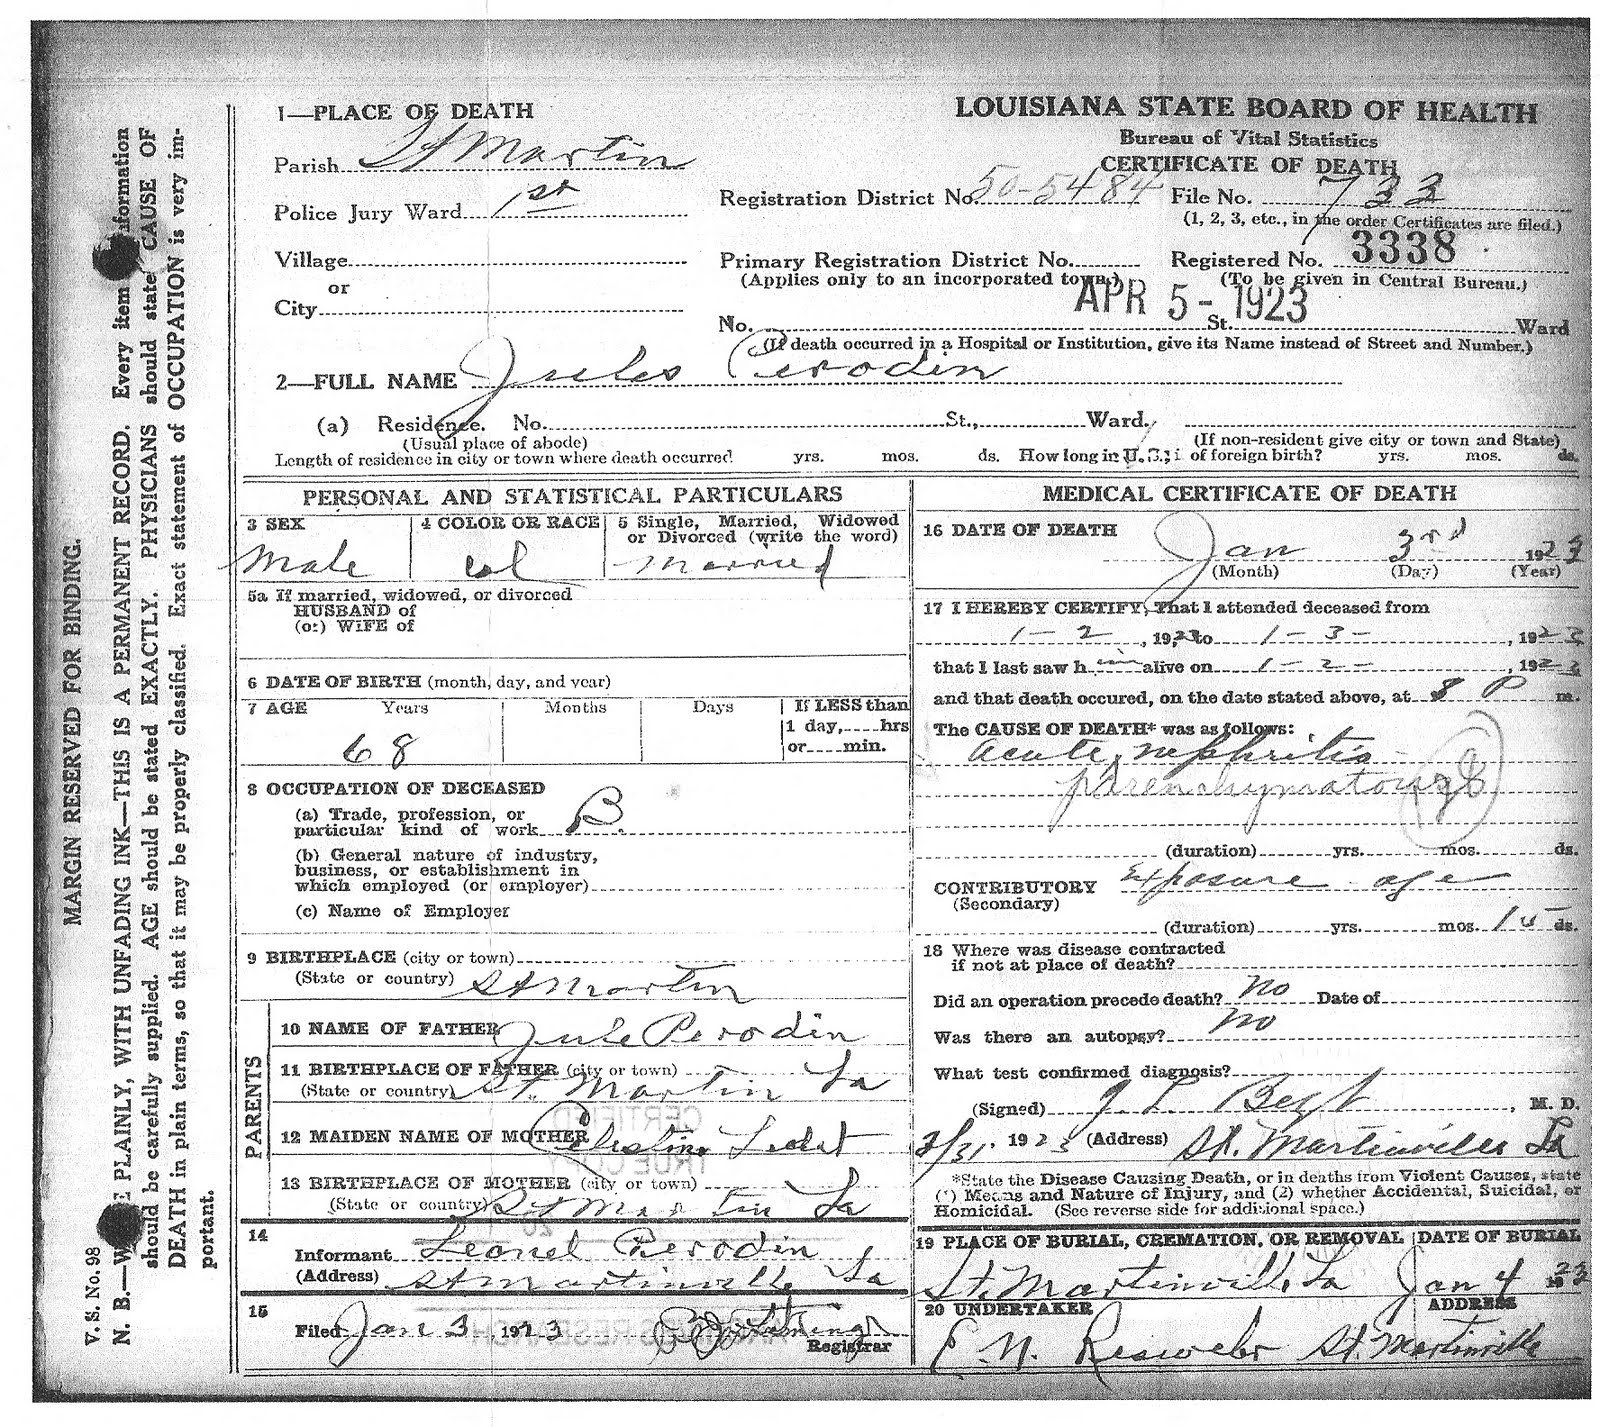 Family history angie sandro of microfilmed death certificates for deaths that occurred in louisiana between 19111960 i was able to order a copy of jules death certificate aiddatafo Image collections